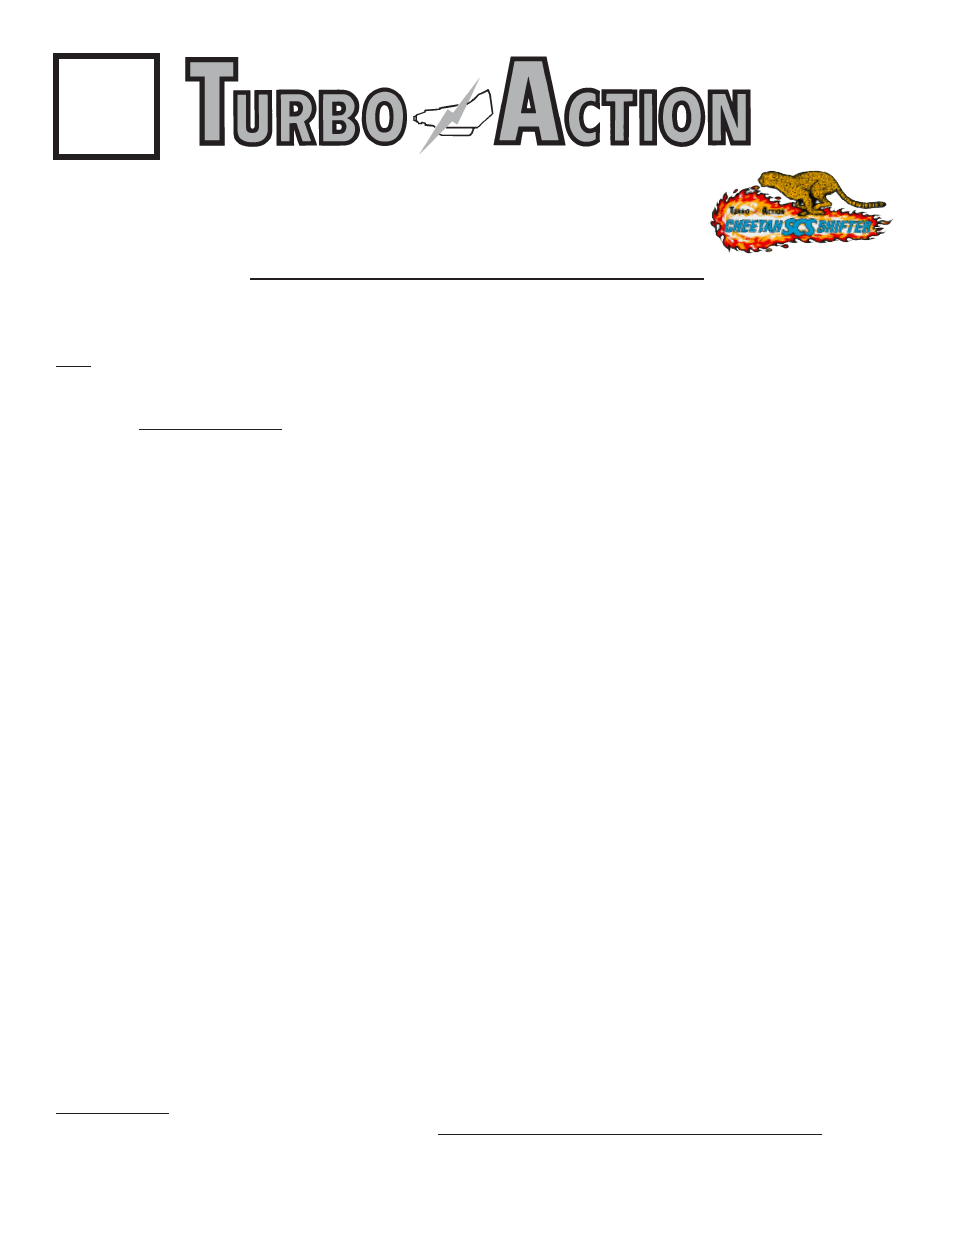 Turbo Action 70001b Cheetah Scs Shifter User Manual 6 Pages 727 Neutral Safety Switch Wiring Diagram